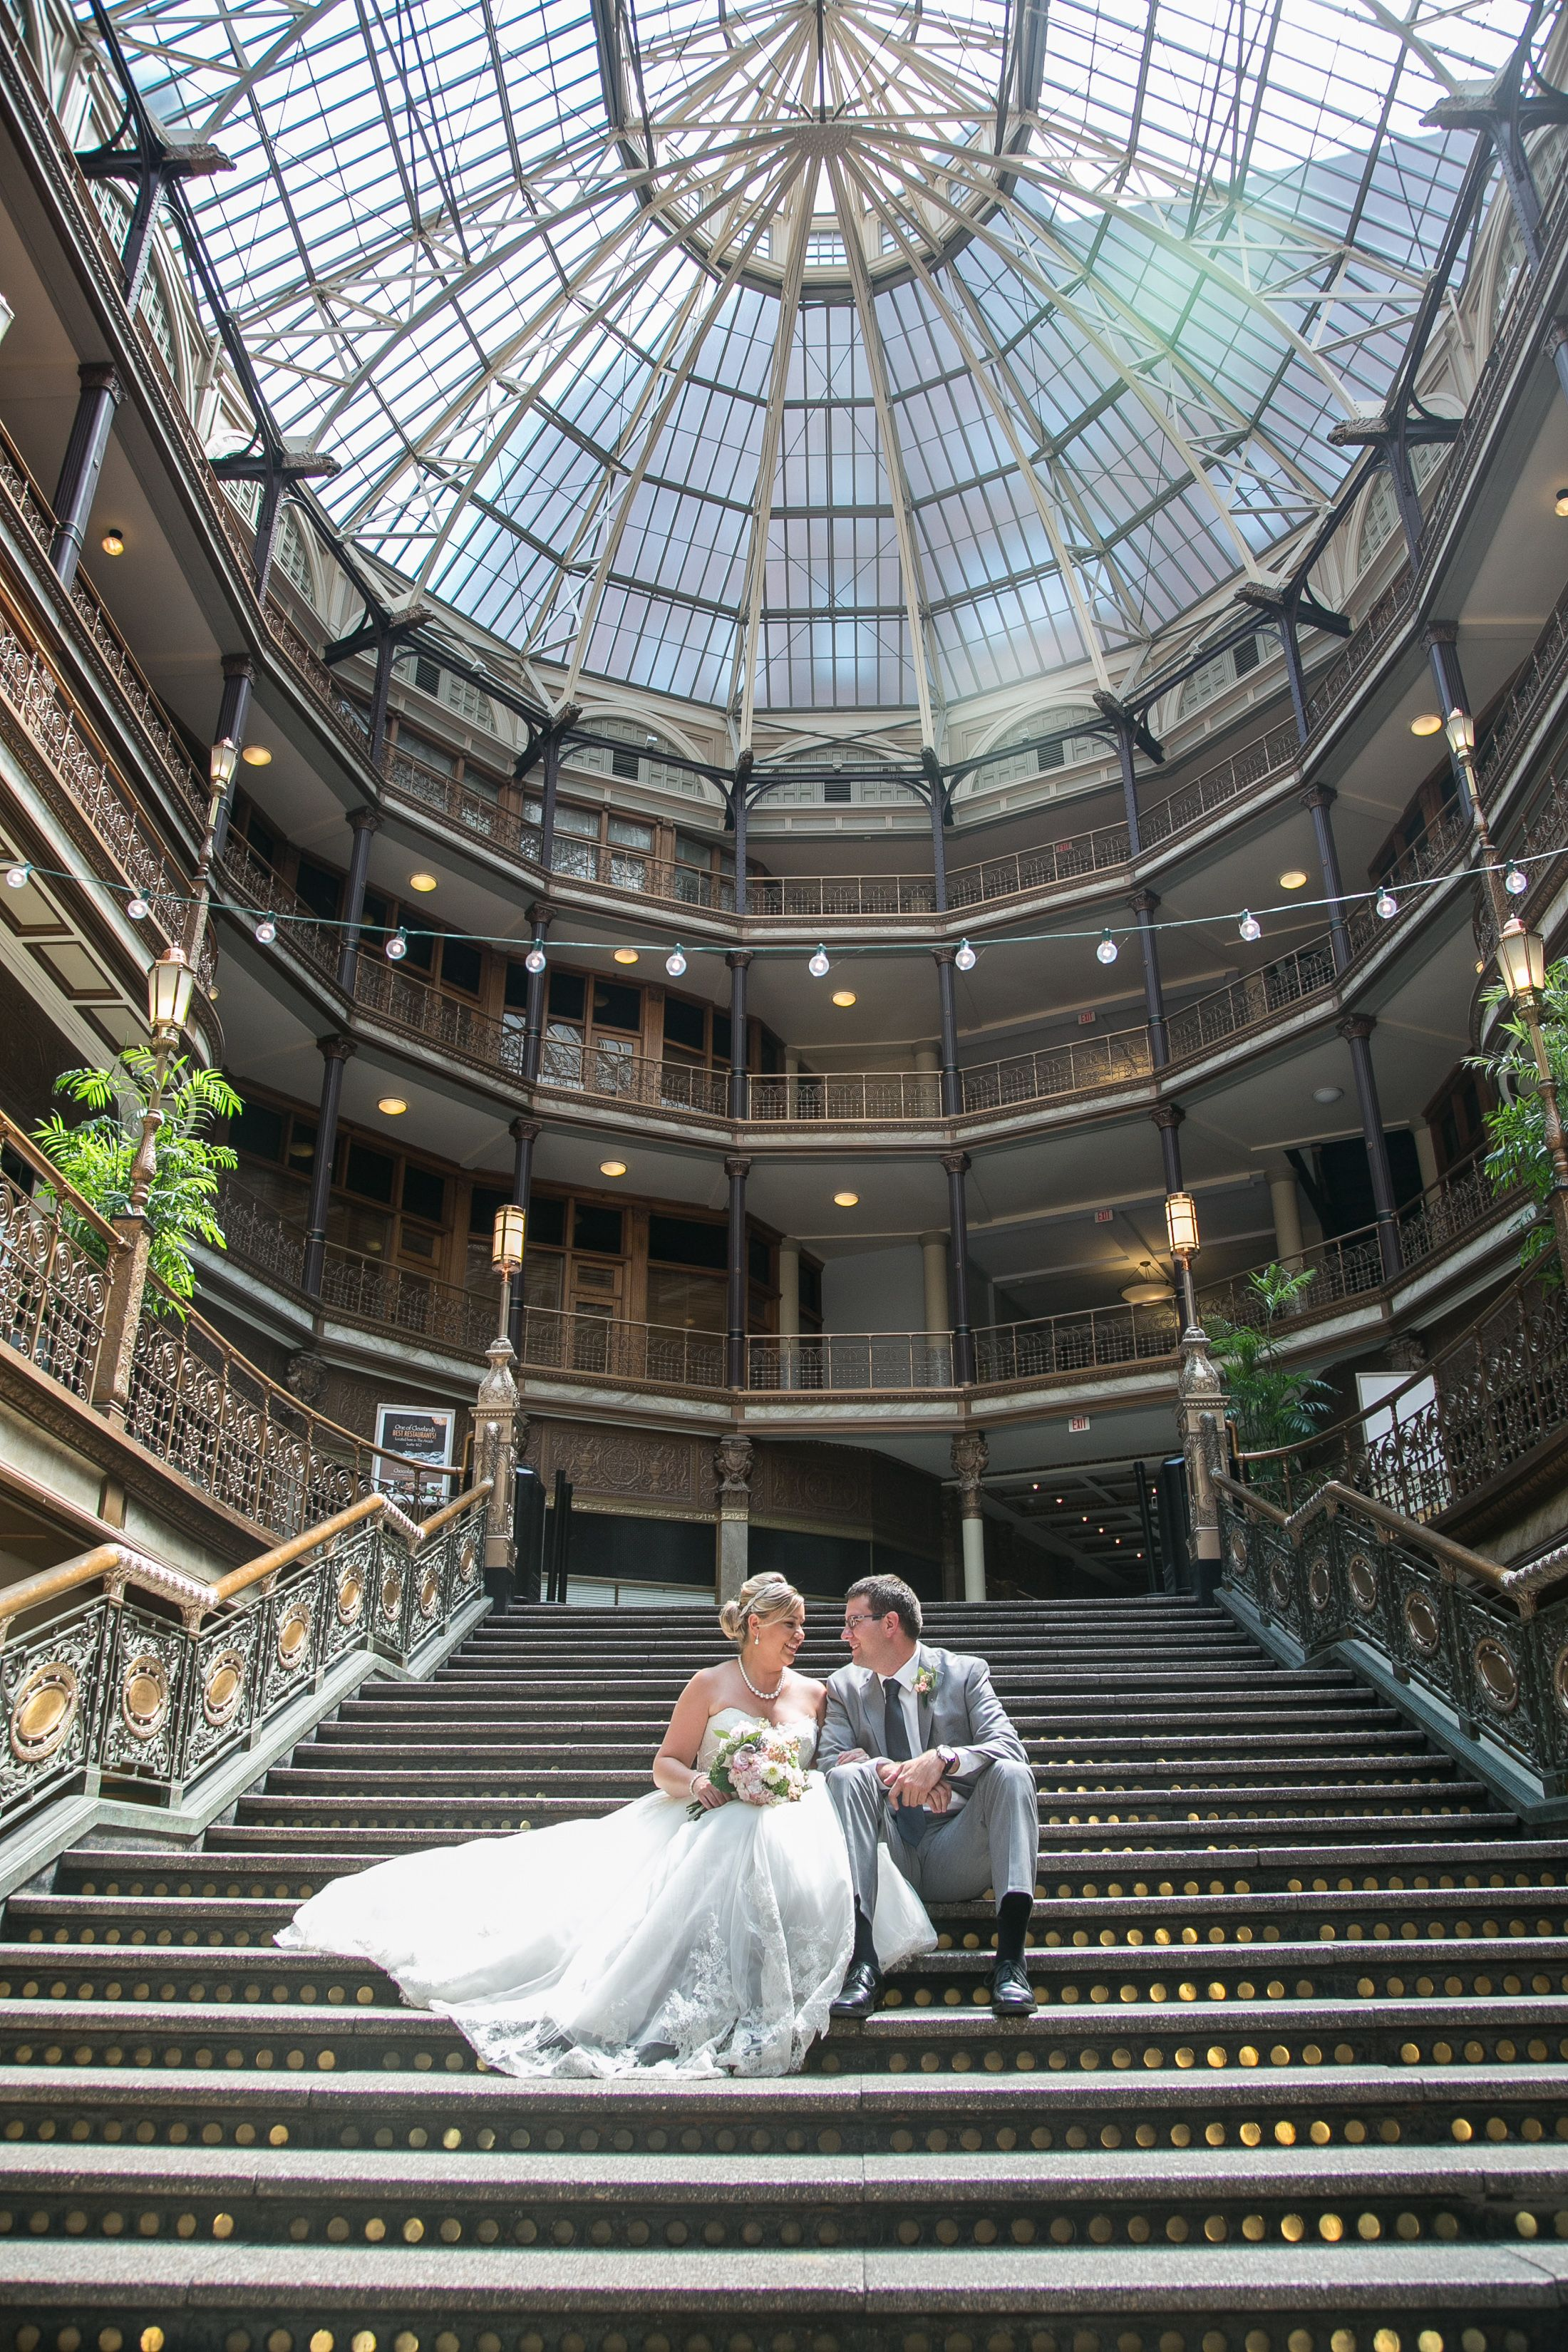 Cleveland Wedding The Arcade In Cleveland Cleveland Wedding Photos Wedding Venues Ohio Cleveland Ohio Wedding Venues Cheap Wedding Venues